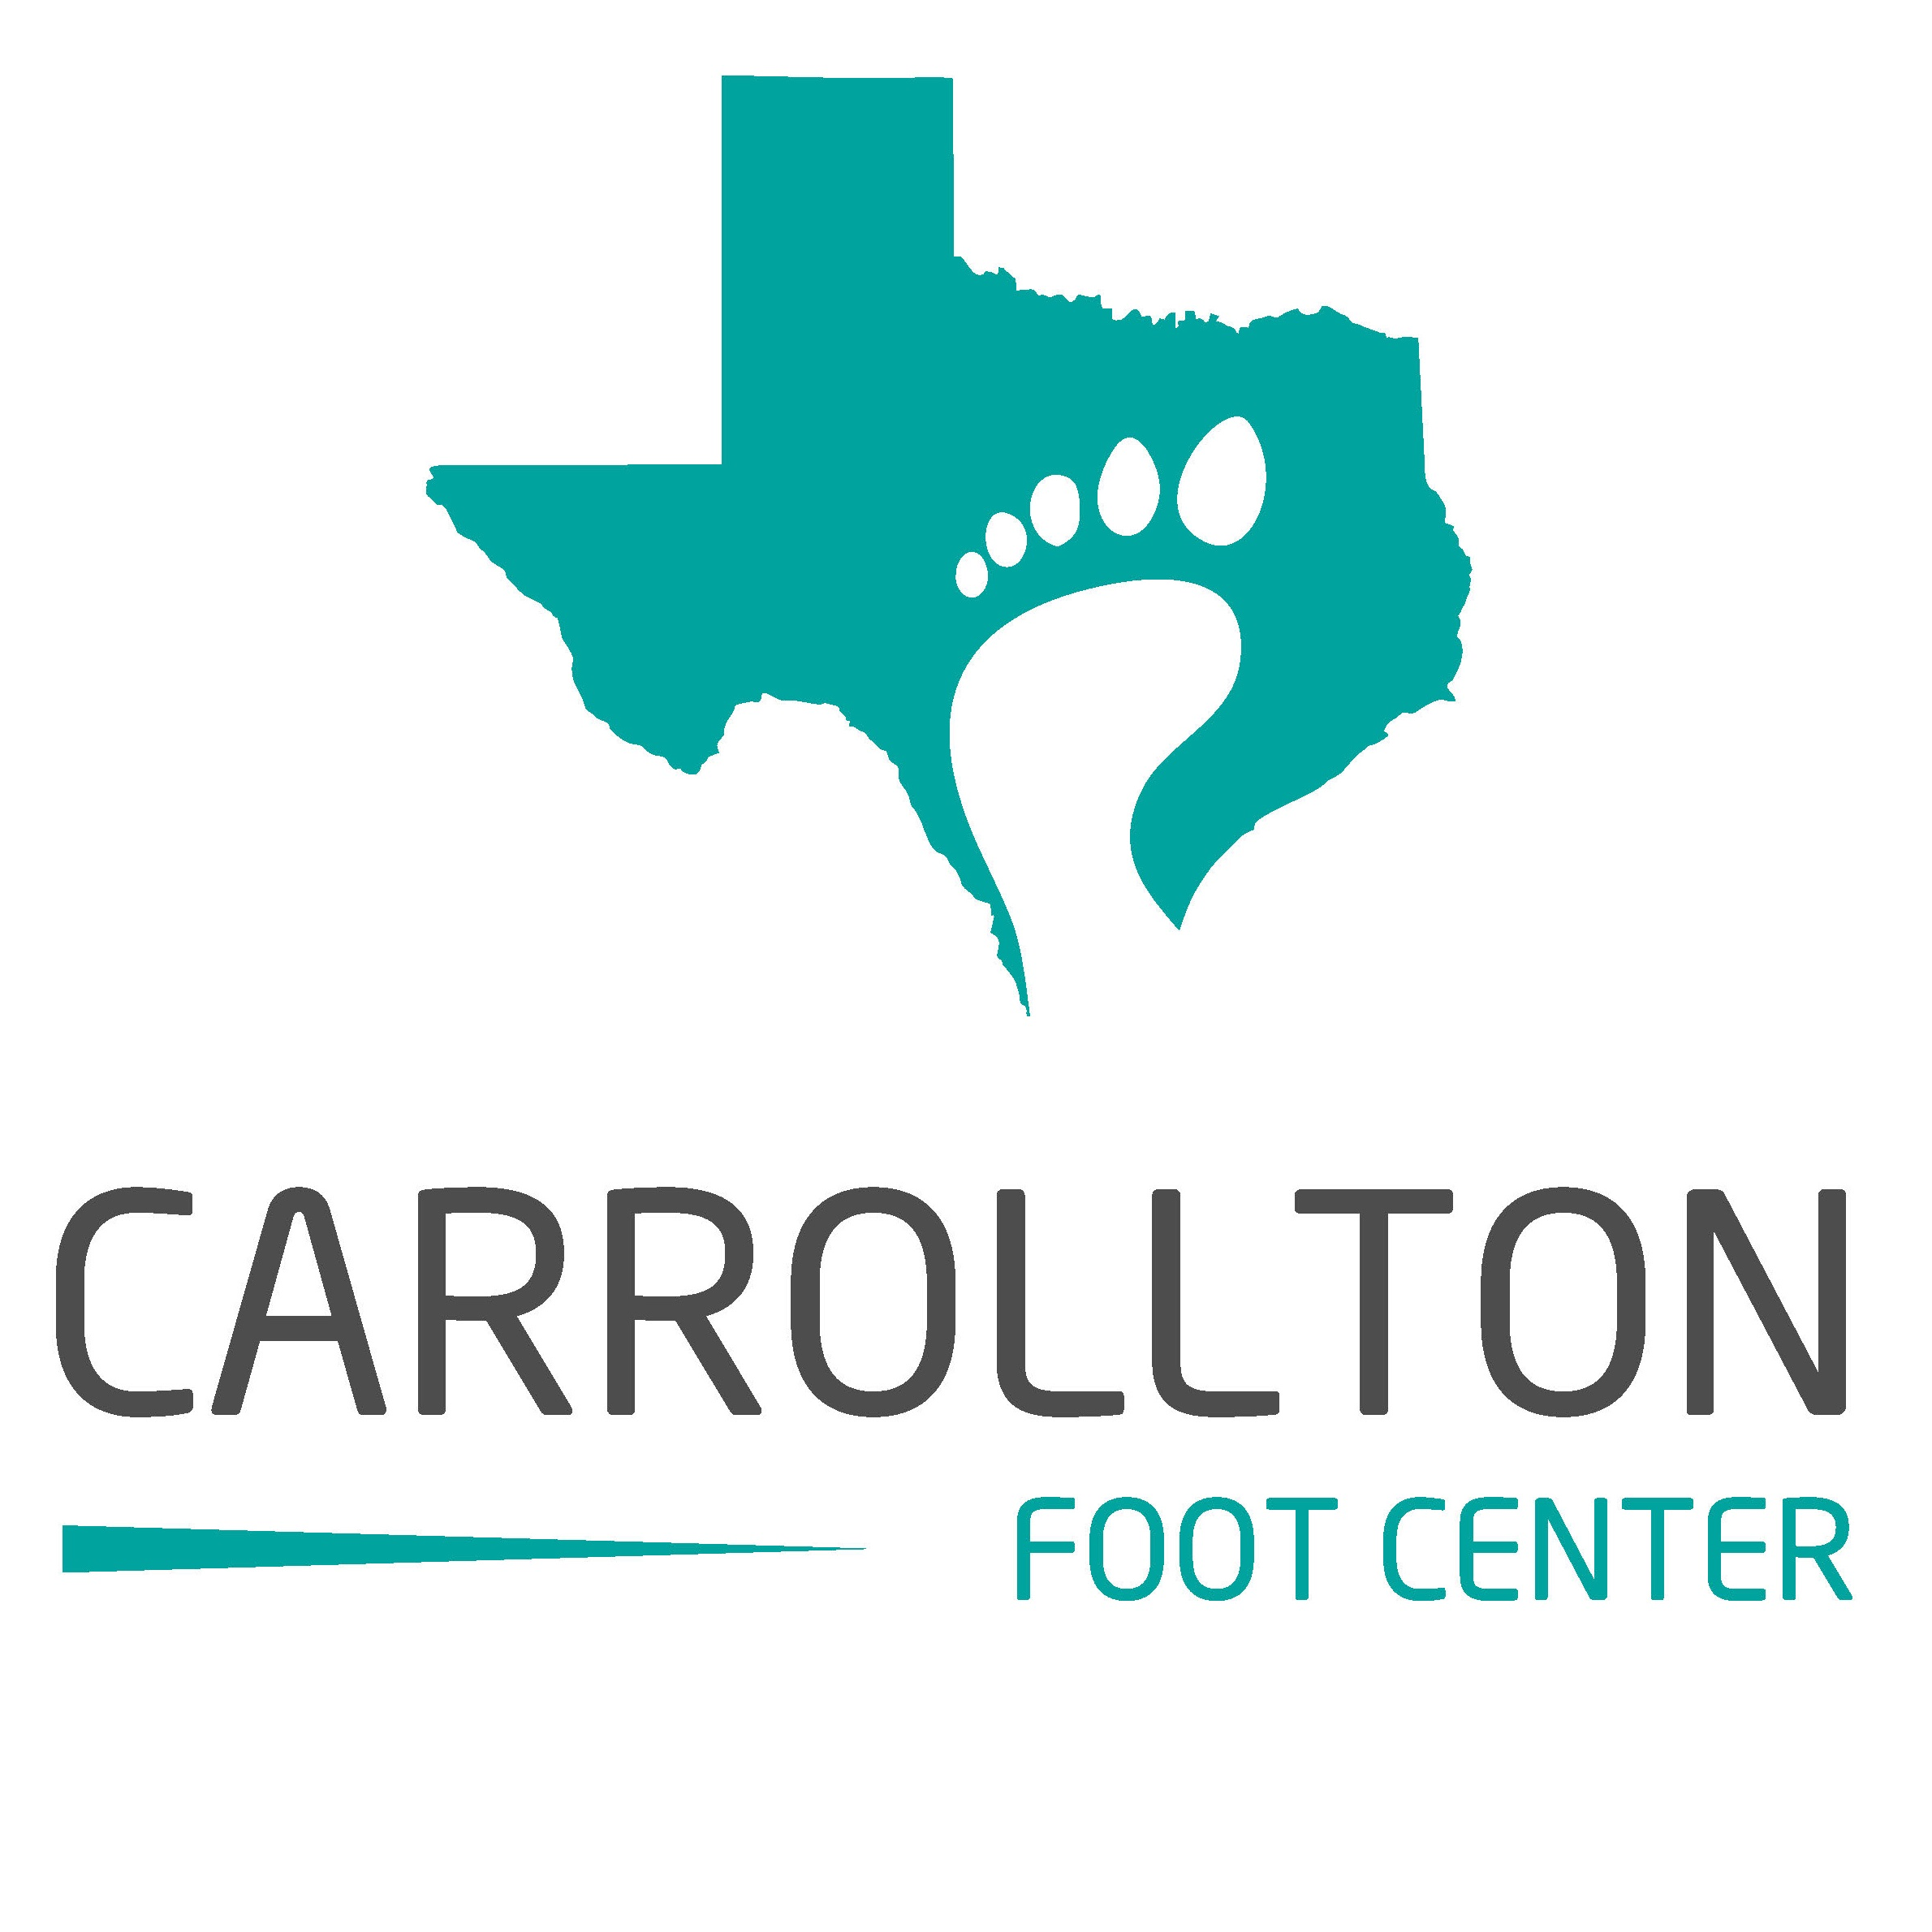 Carrollton Foot Center, PLLC